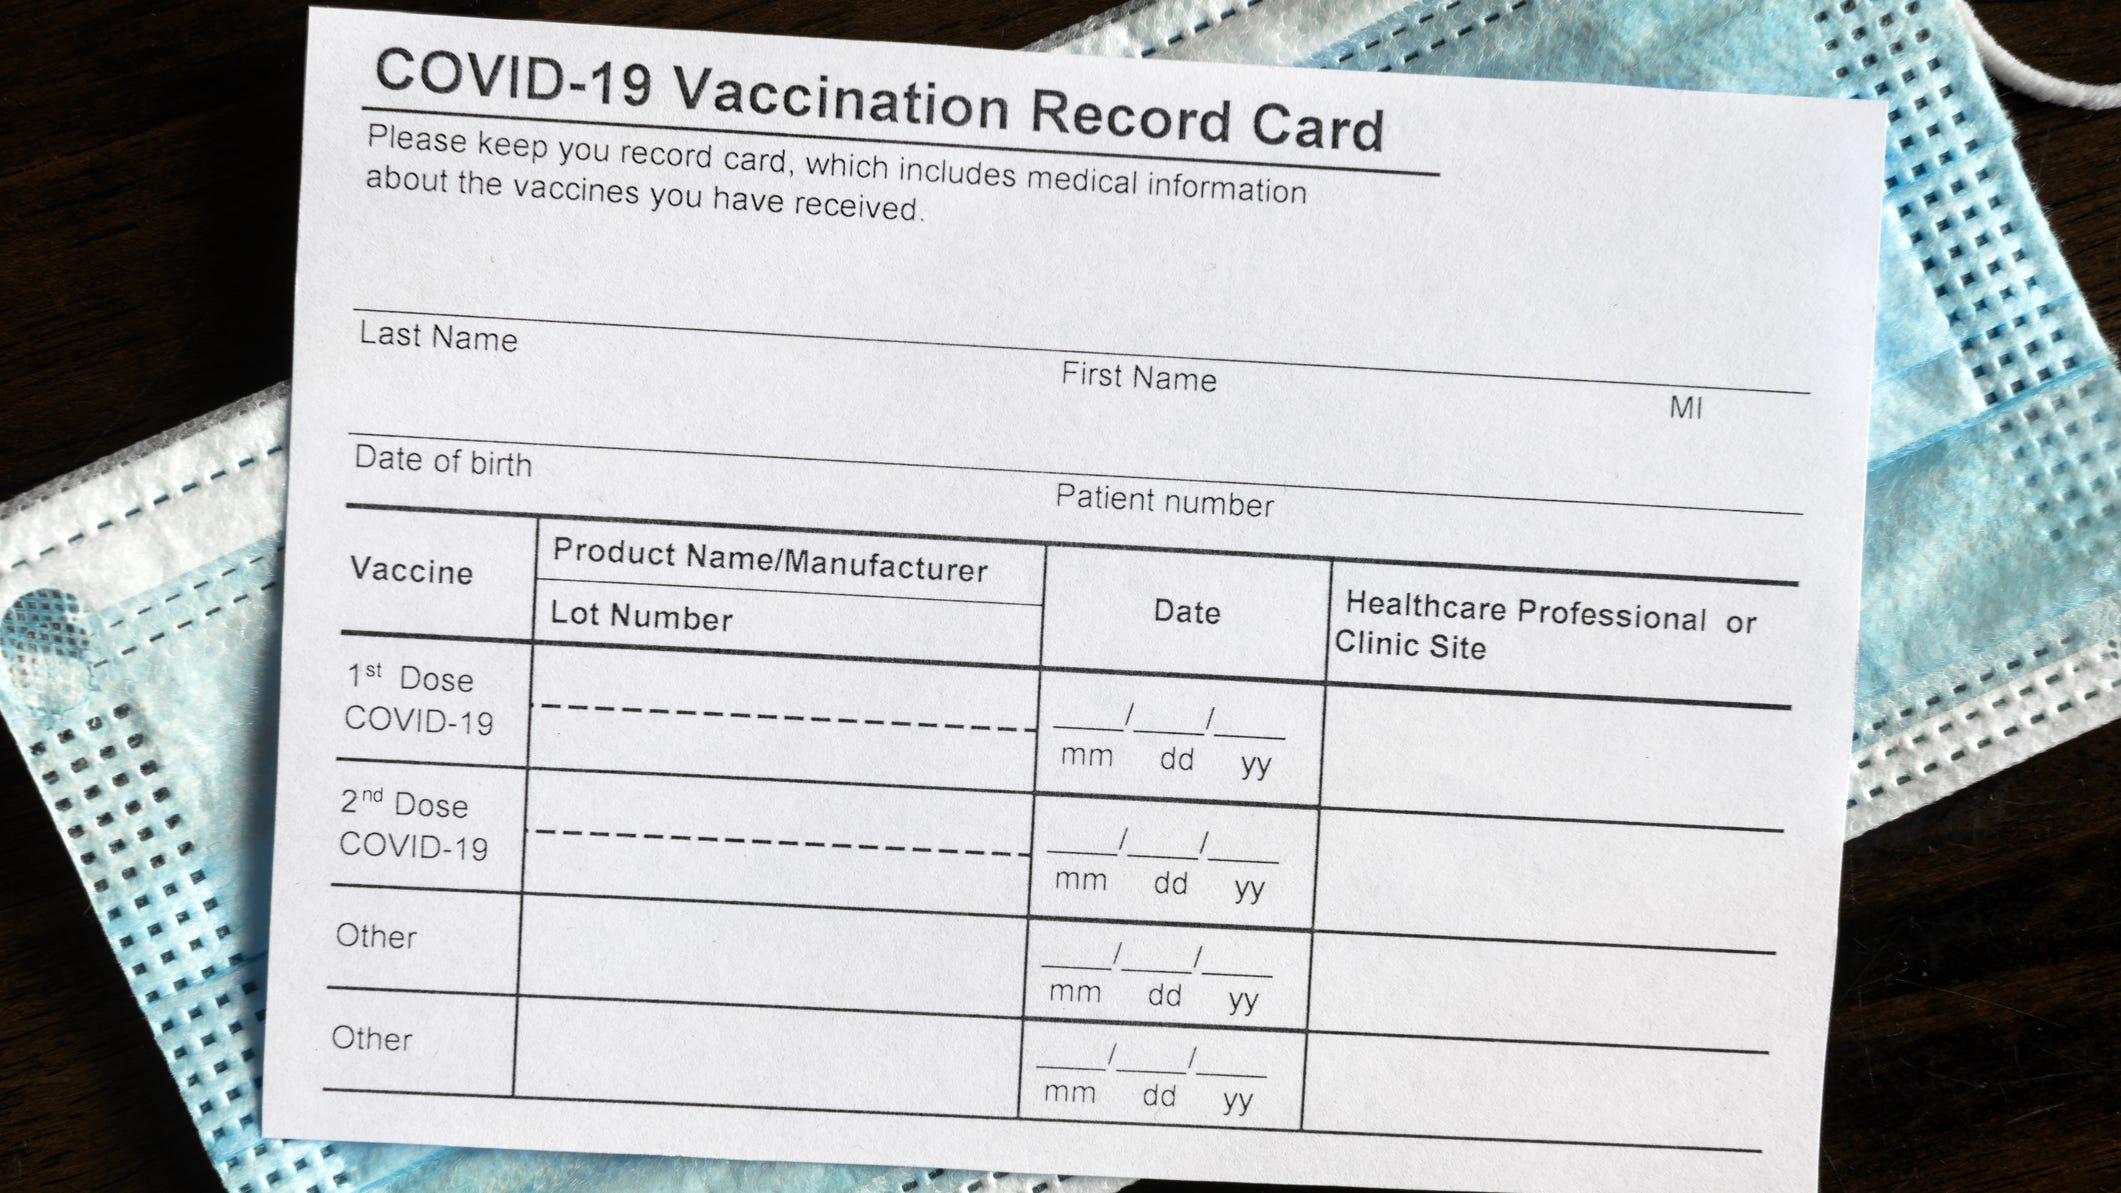 New Orleans to require vaccinations or negative COVID tests for indoor activities